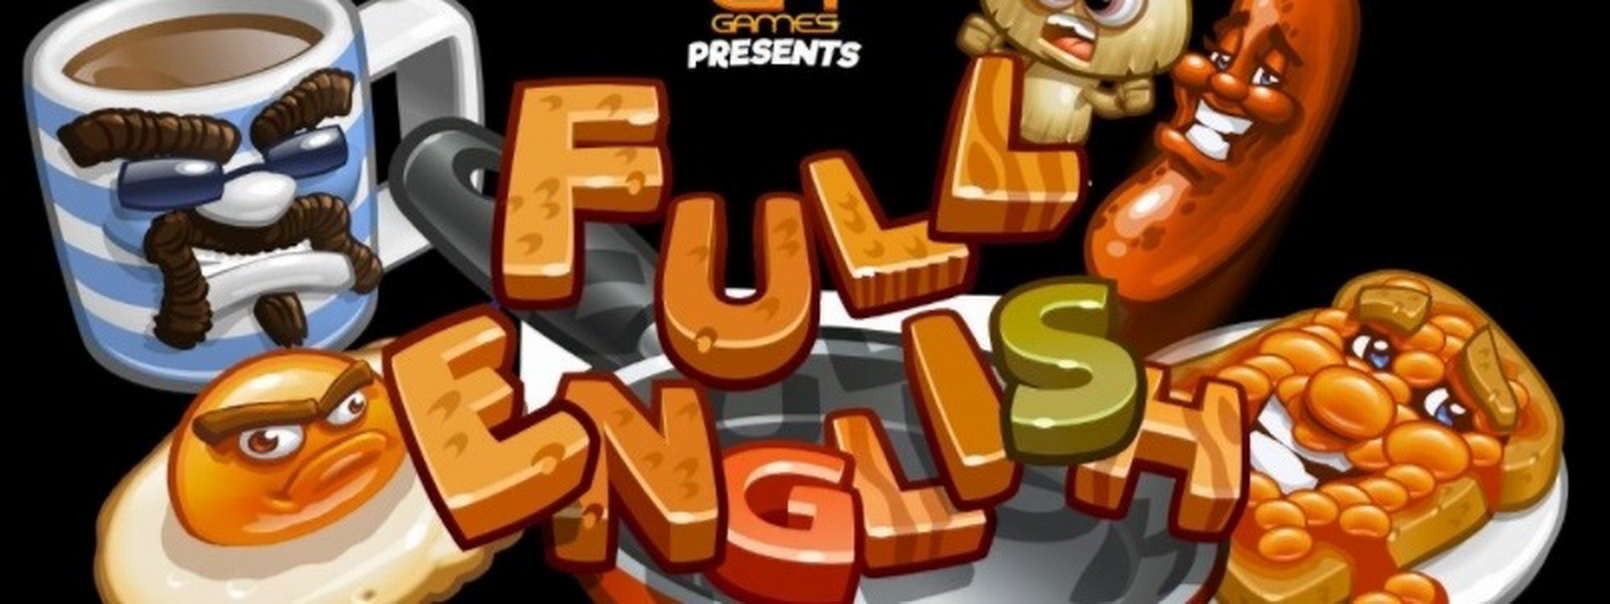 The Full English Online Slot Demo Game by CR Games